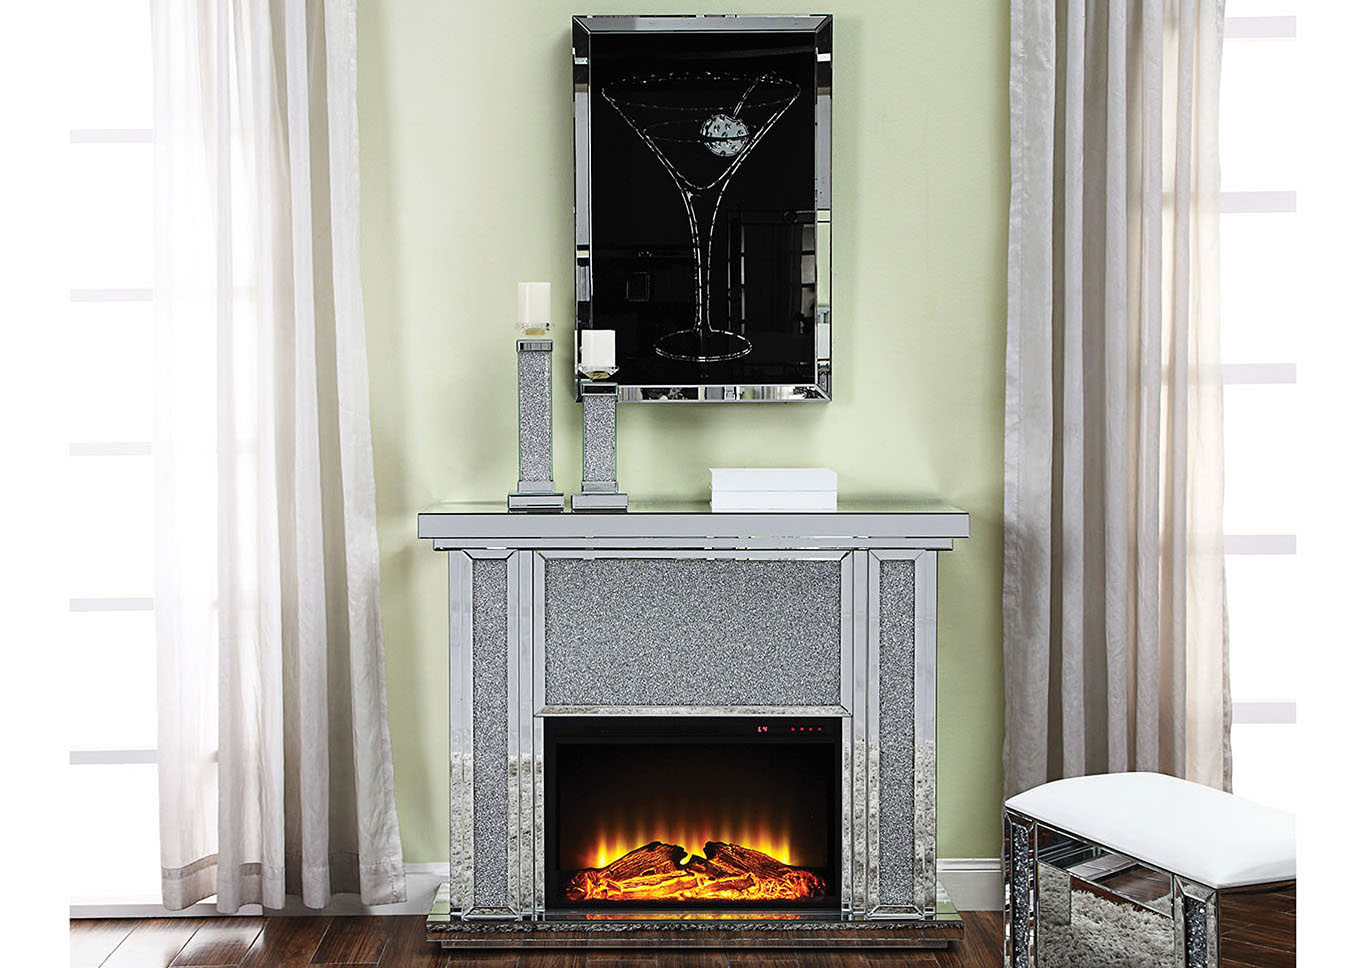 Nowles Silver Electric Fireplace,Acme